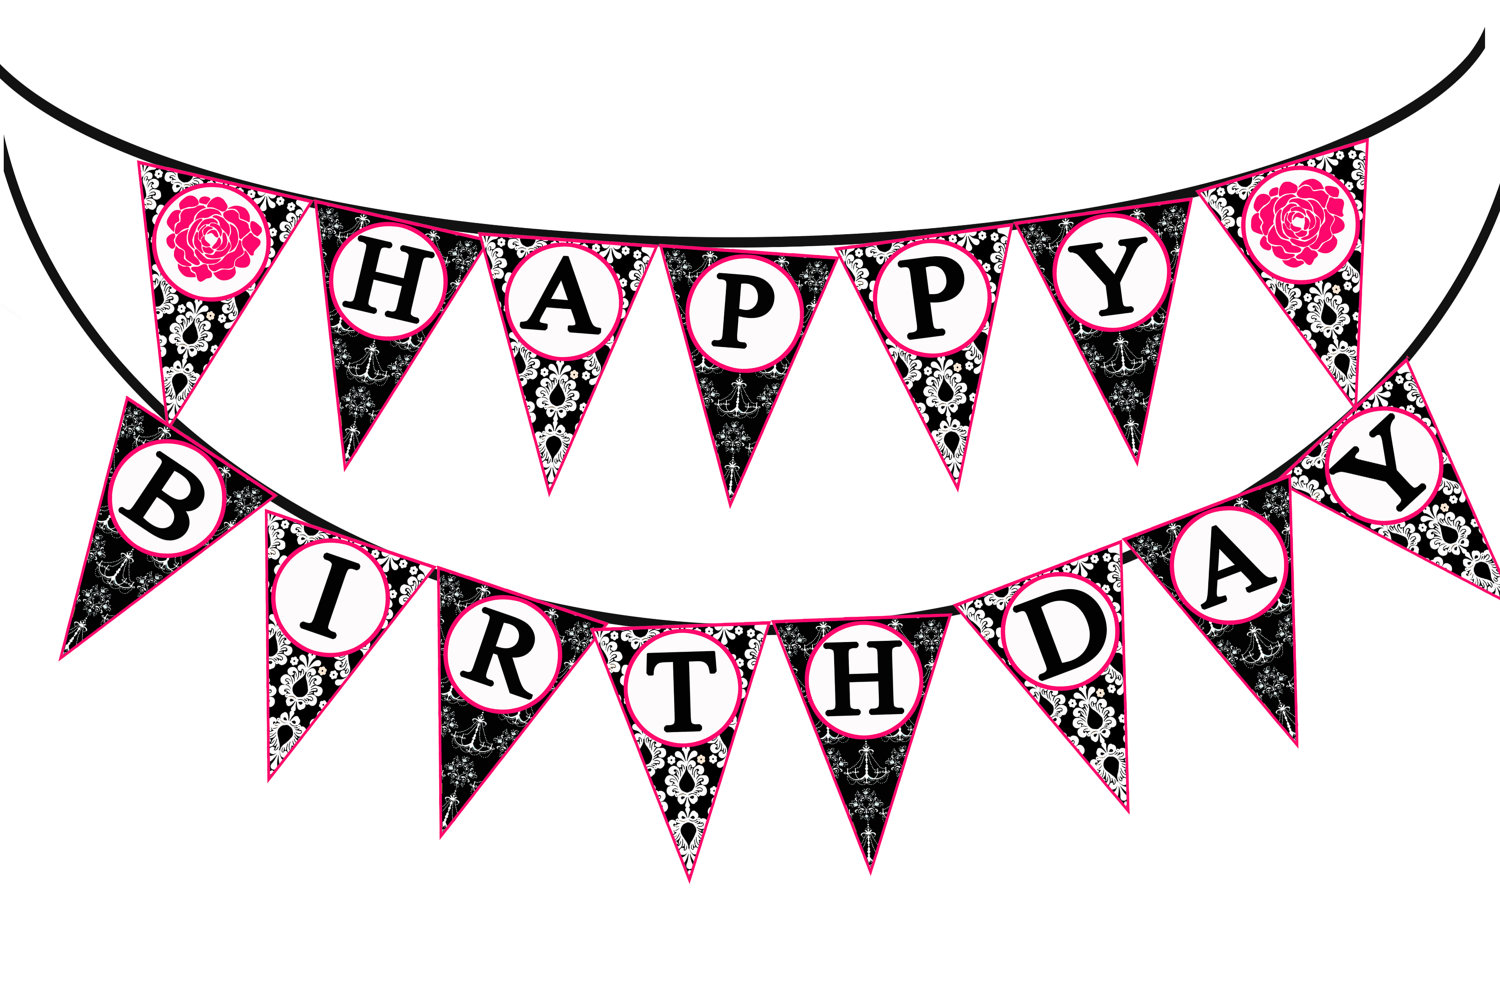 Happy birthday banner clipart black and white image free library Happy birthday birthday banner clipart free download clip art ... image free library